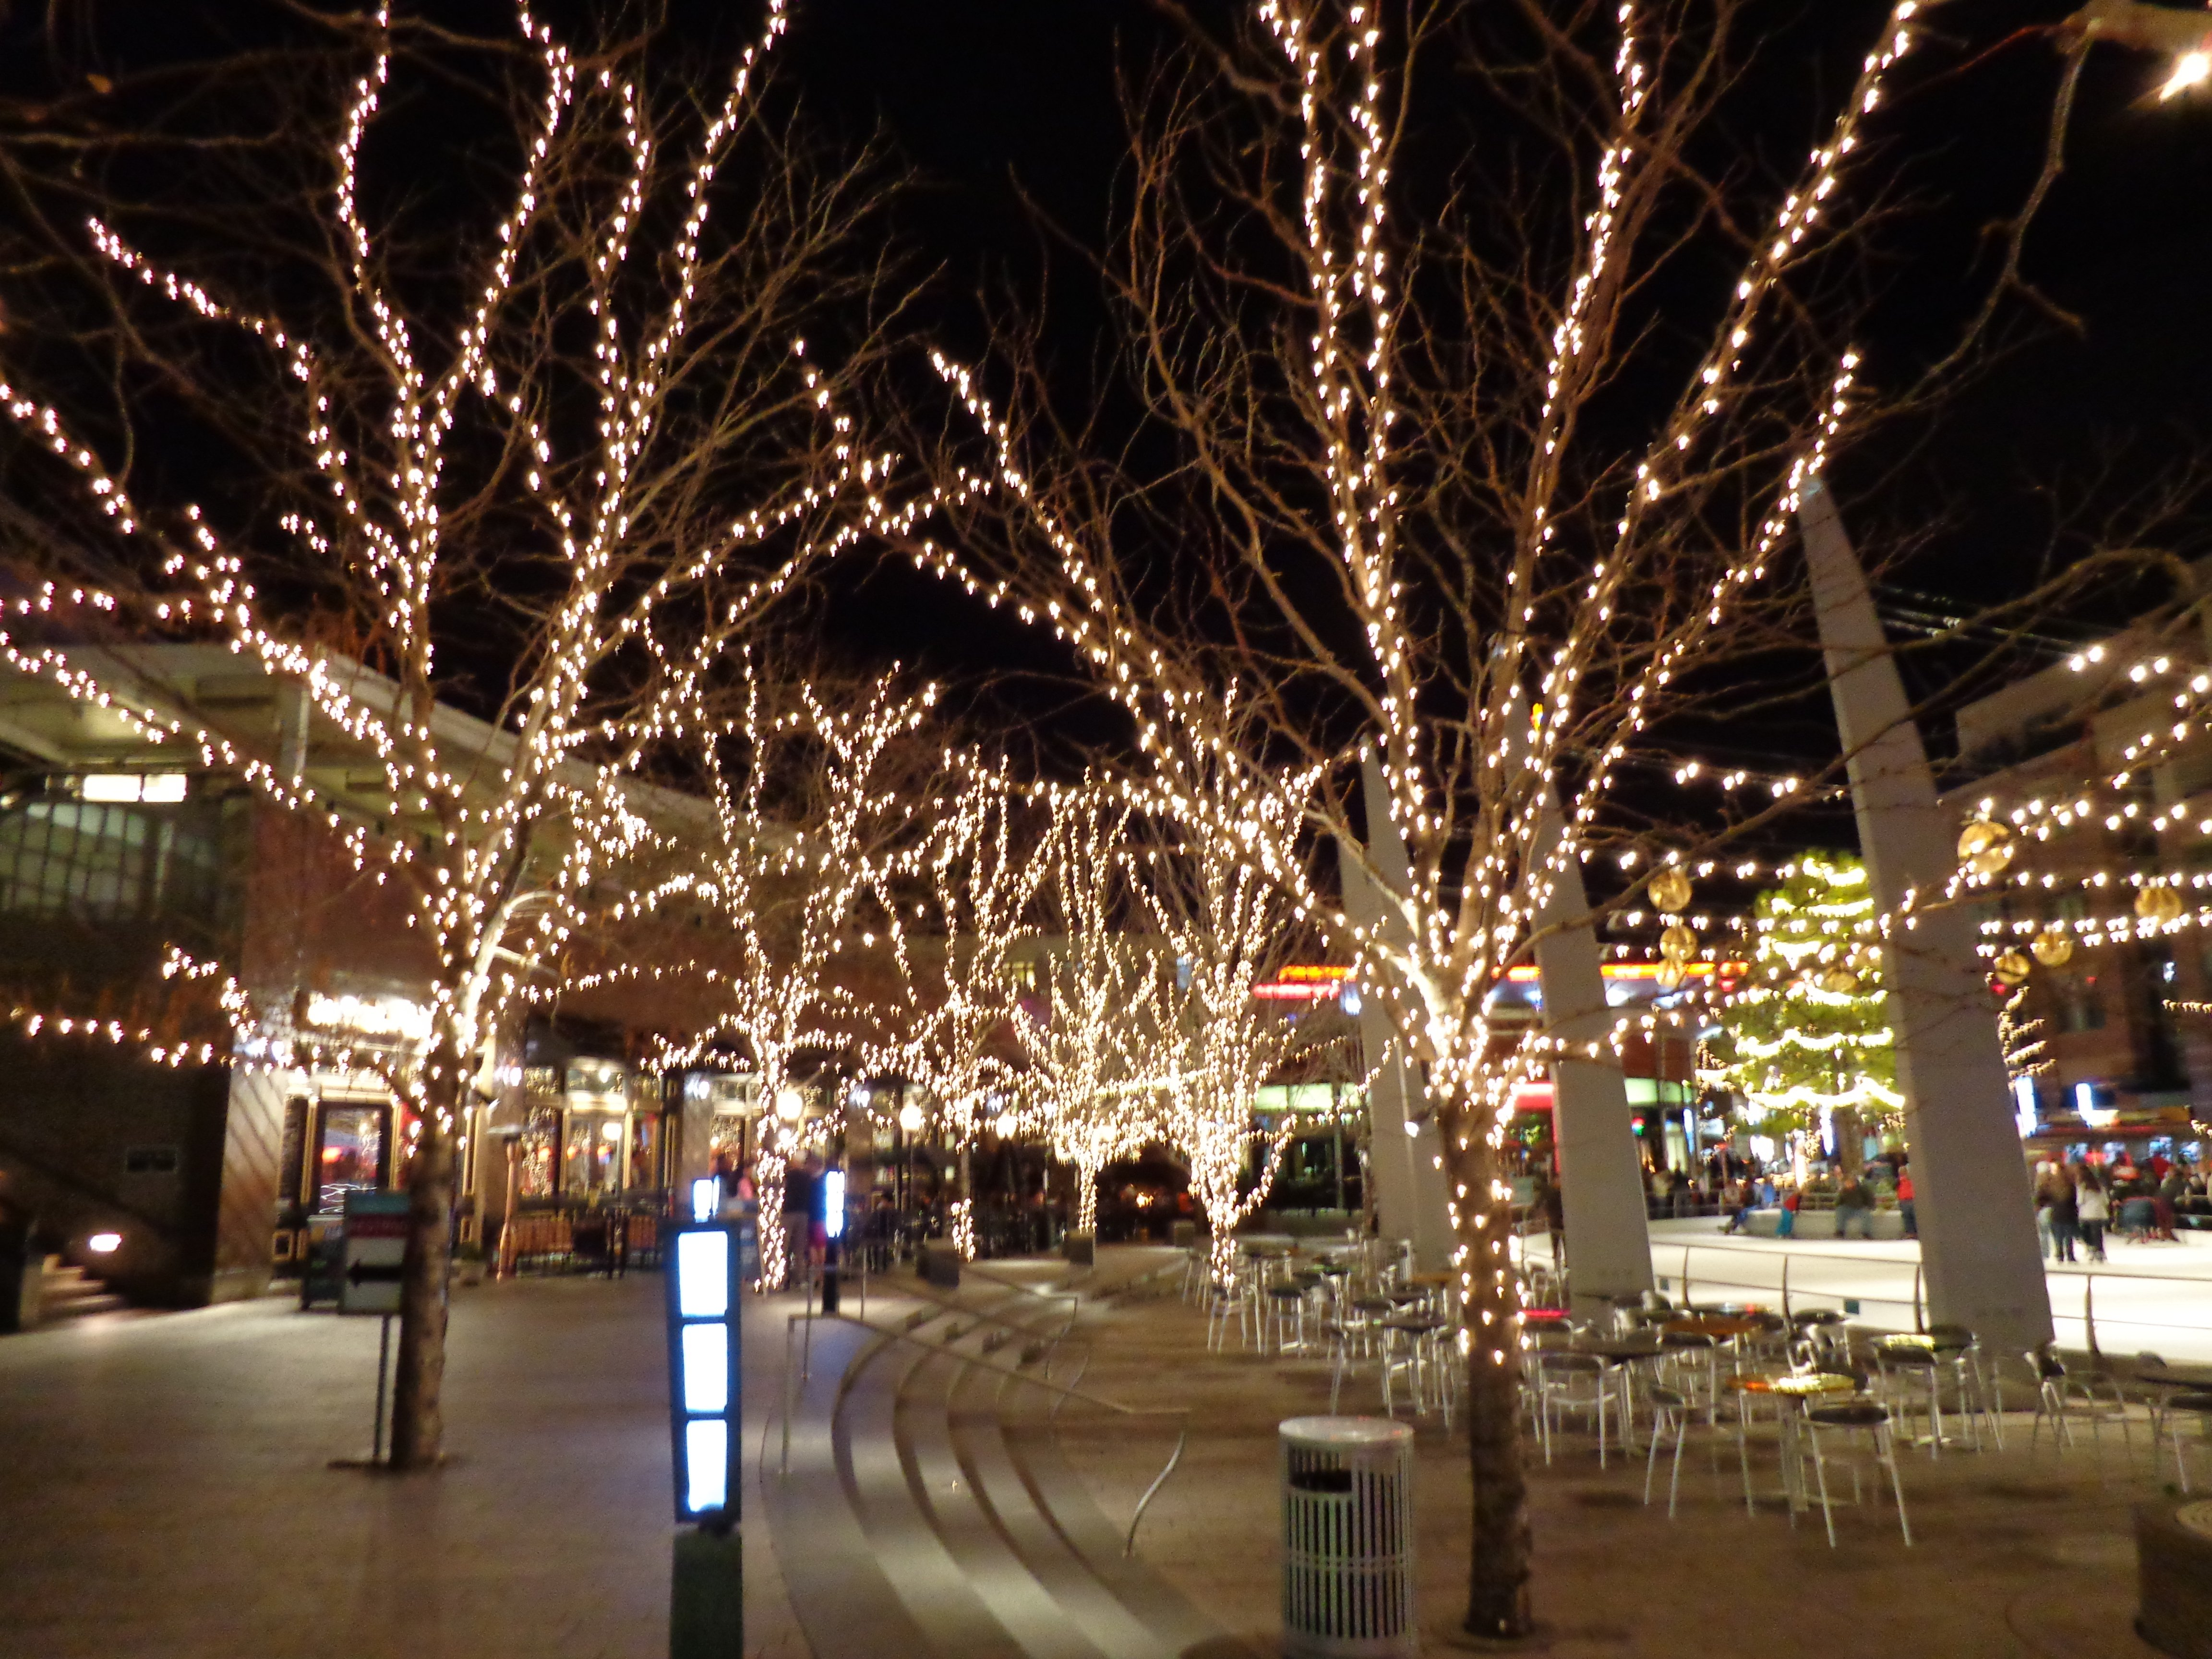 Outdoor Plaza Nighttime Scene With Skating Rink And